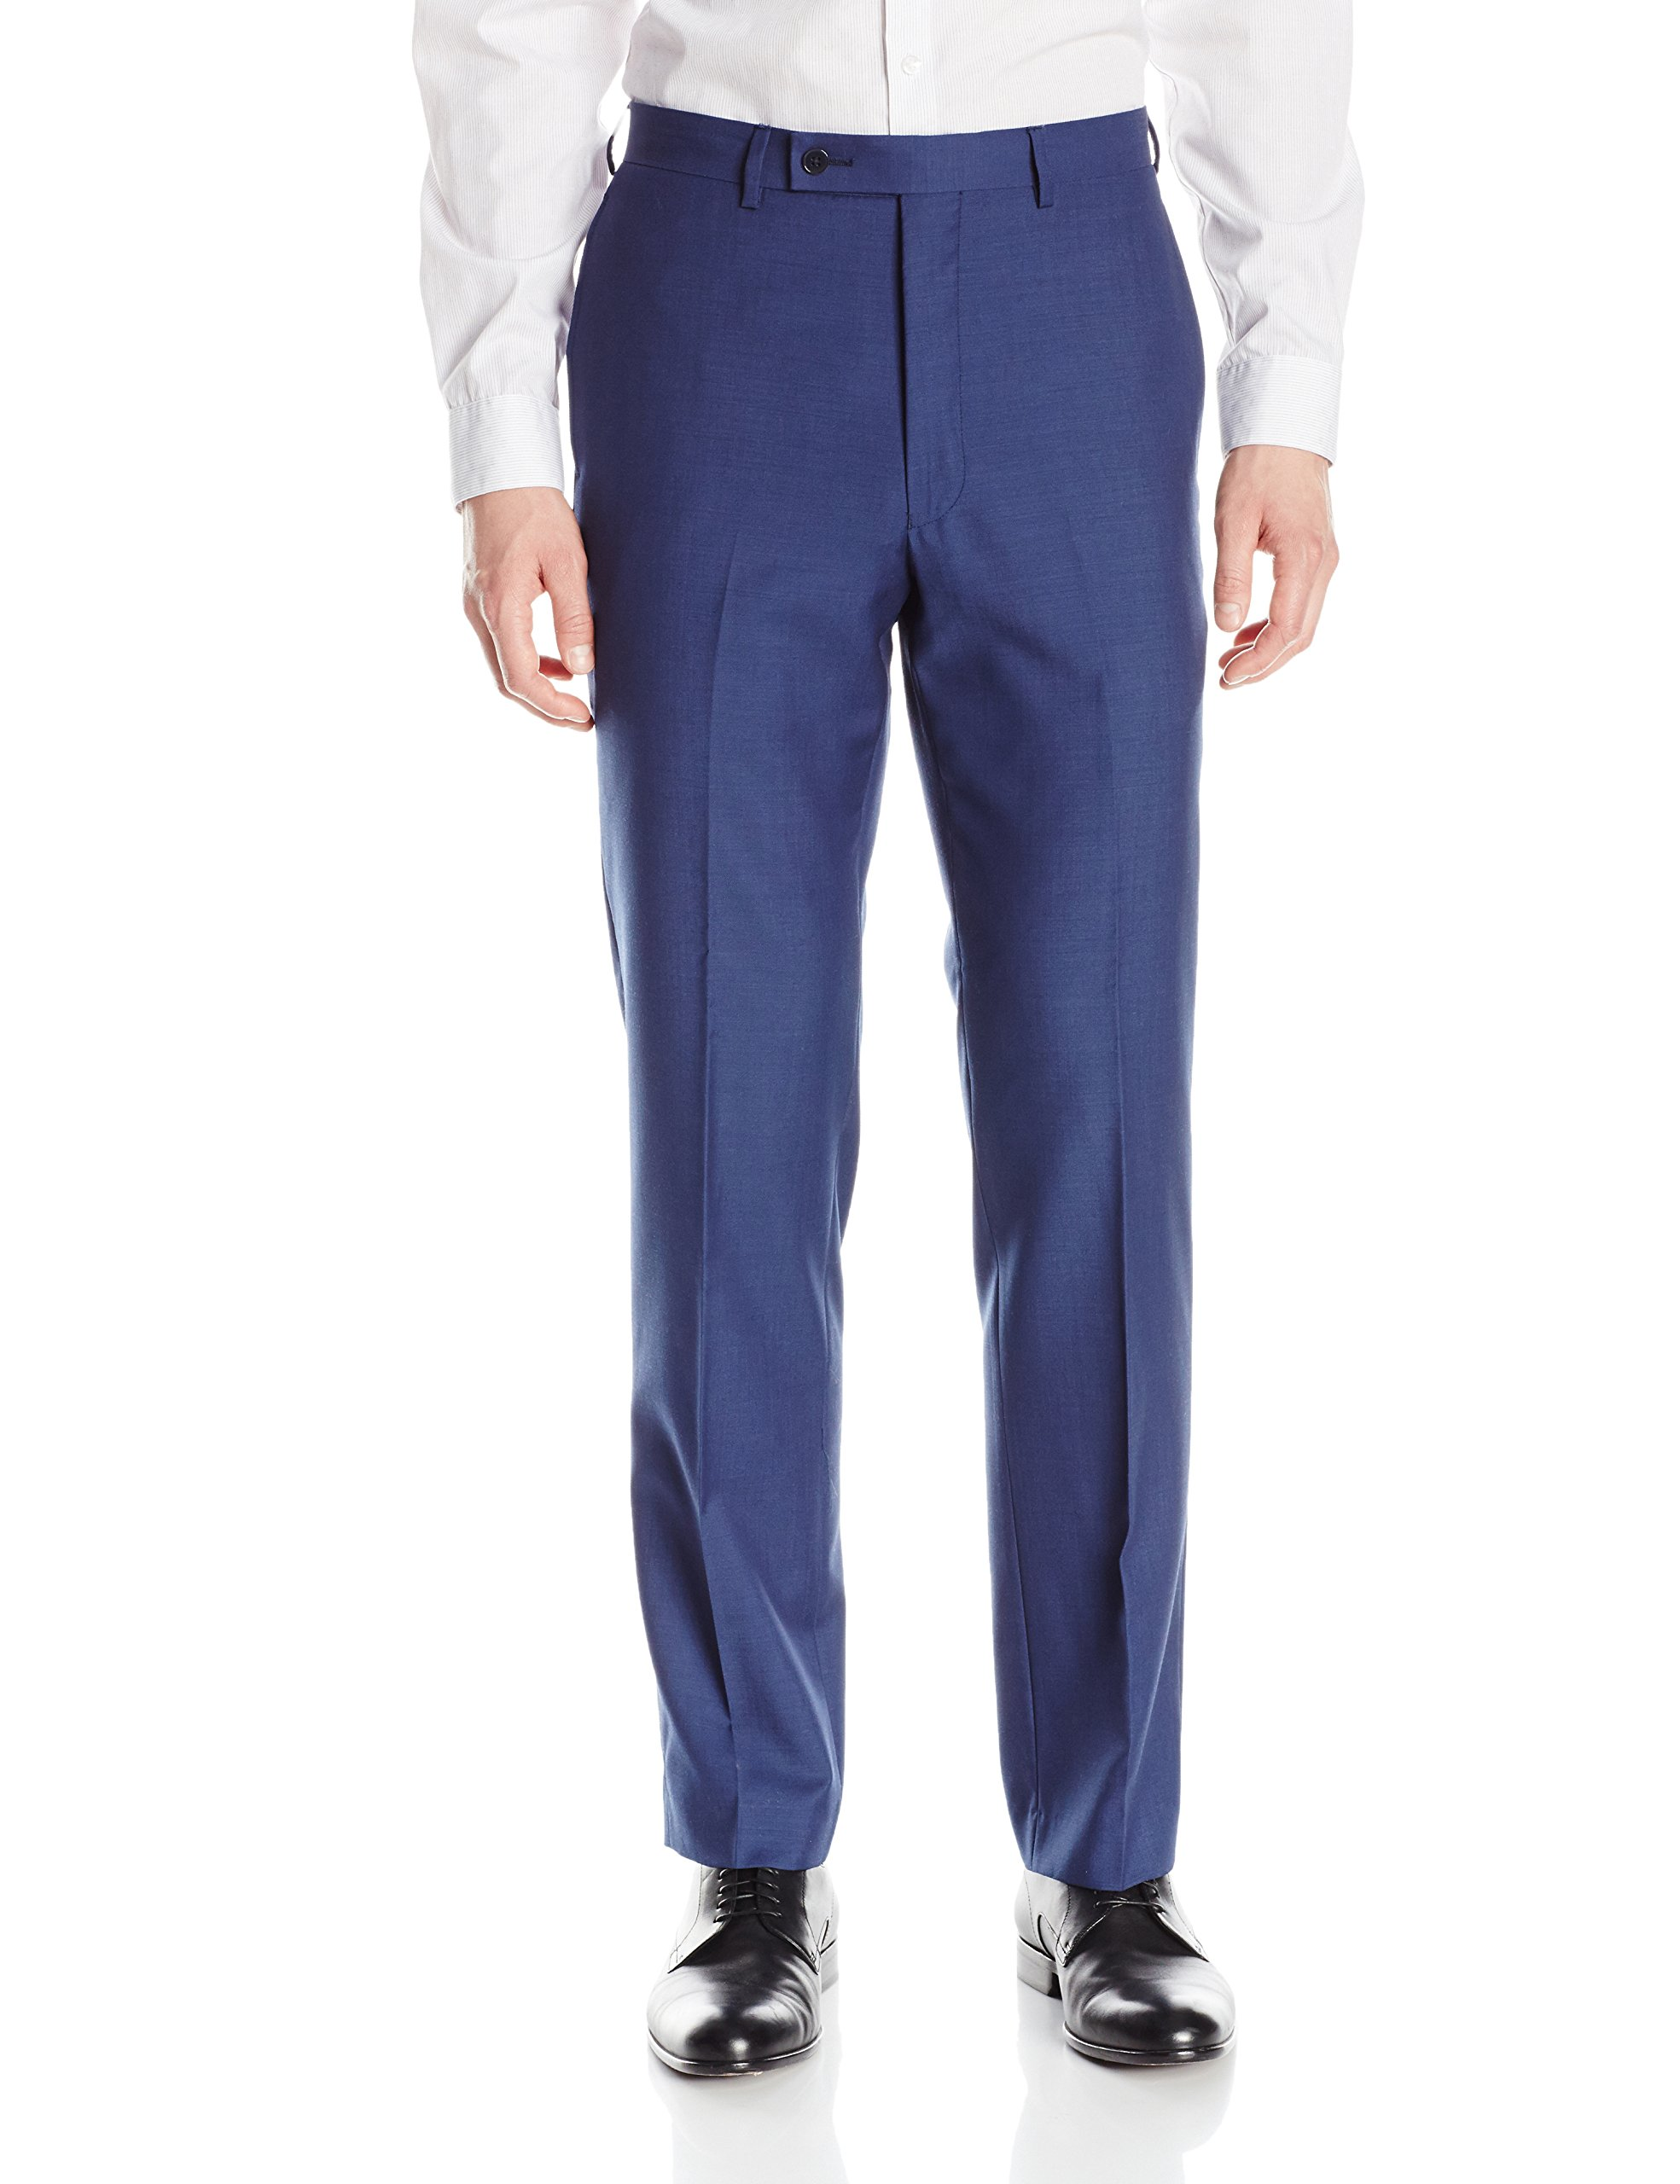 Calvin Klein Men's X-Fit Slim Stretch Suit Separate (Blazer and Pant), Blue Pant, 34W x 30L